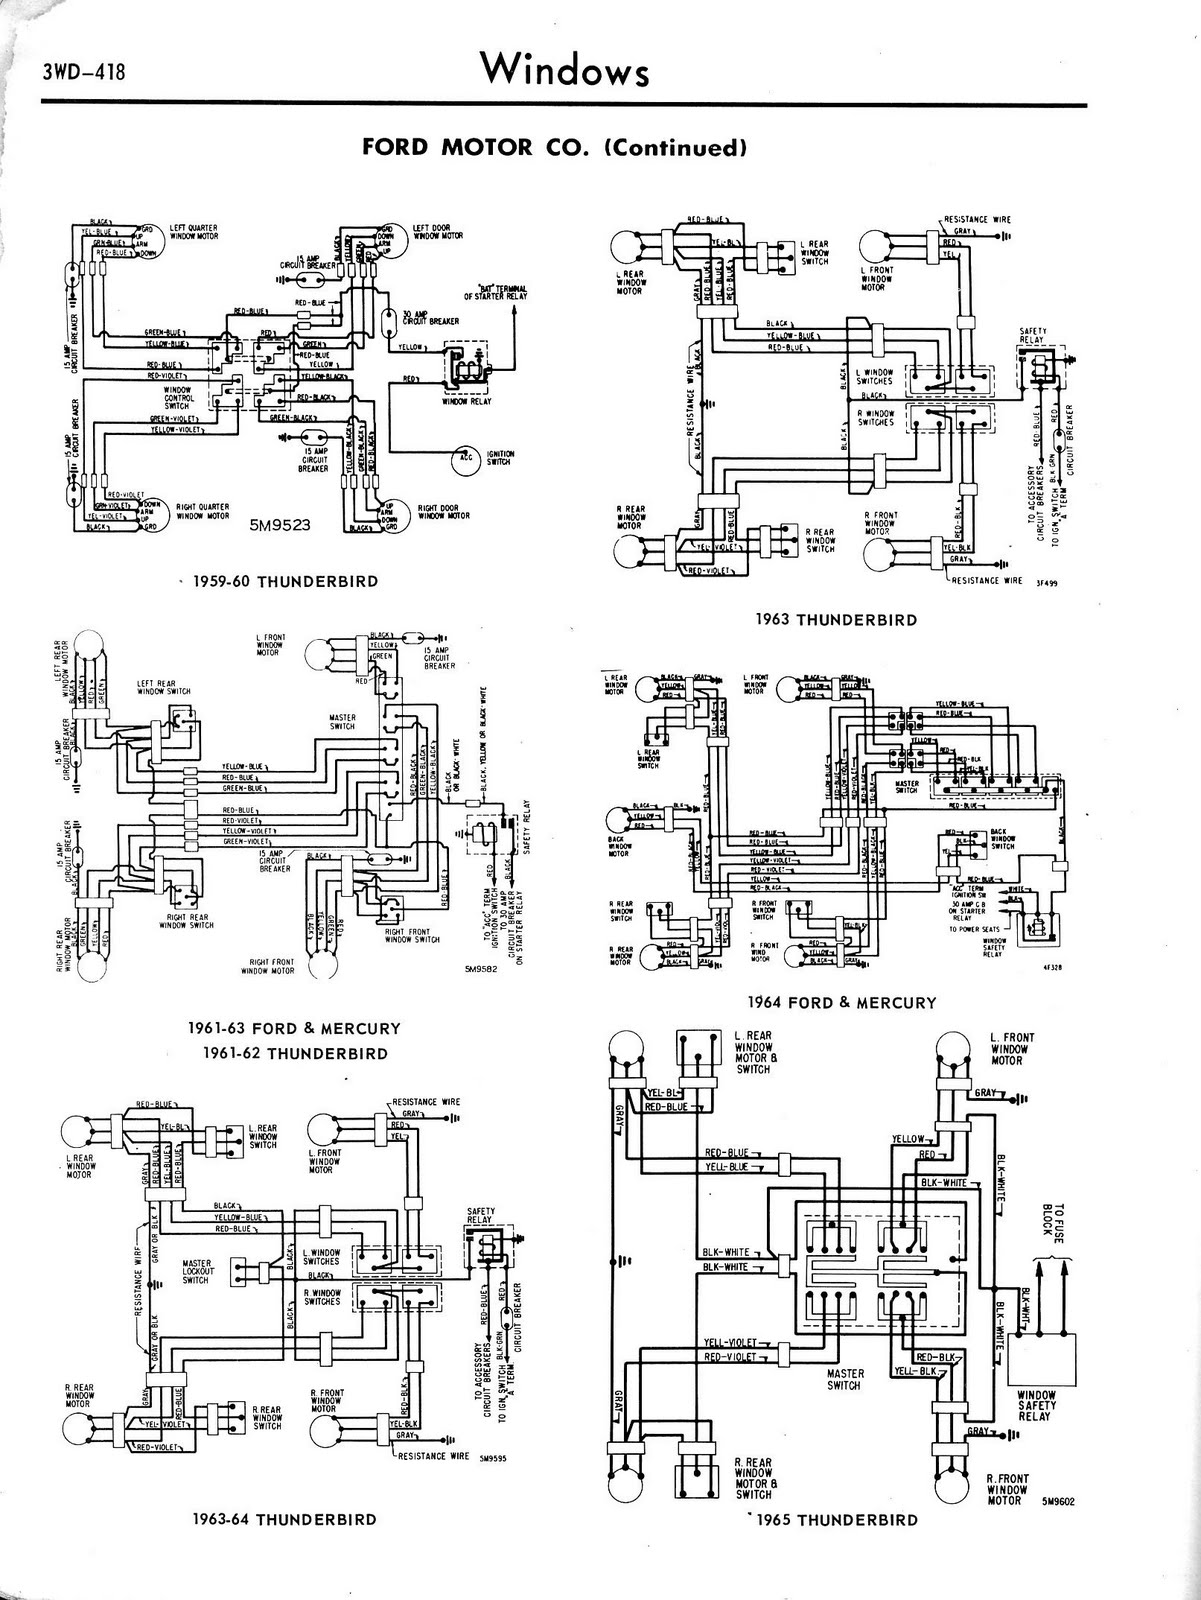 1965+Ford+Thunderbird+Window+Controls+Diagram wiring diagram for 1972 ford f100 the wiring diagram 1959 ford f100 wiring harness at bayanpartner.co